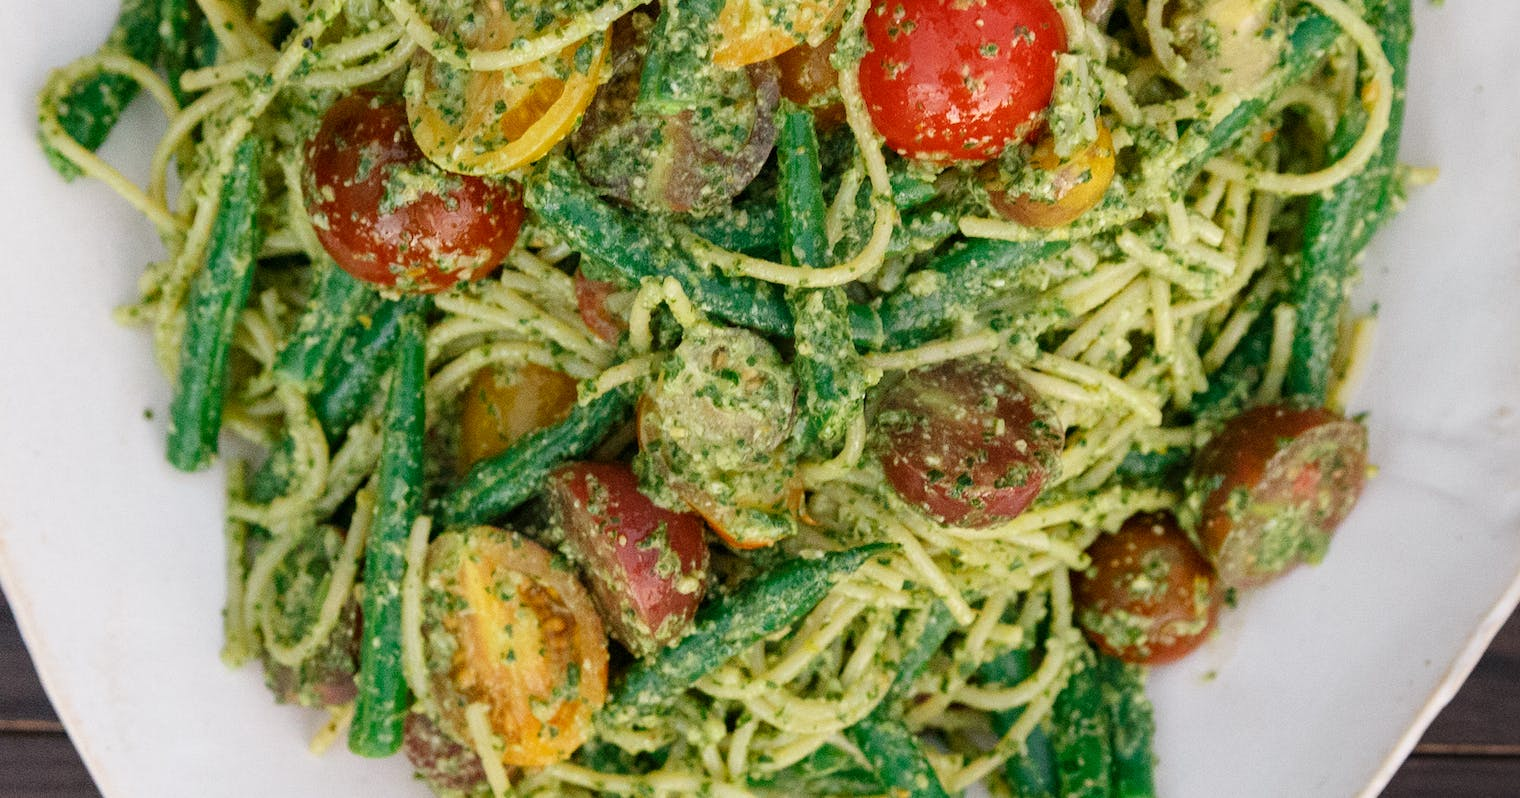 ... Spaghetti with Tomatoes and Haricots Verts Recipe - The Yellow Table